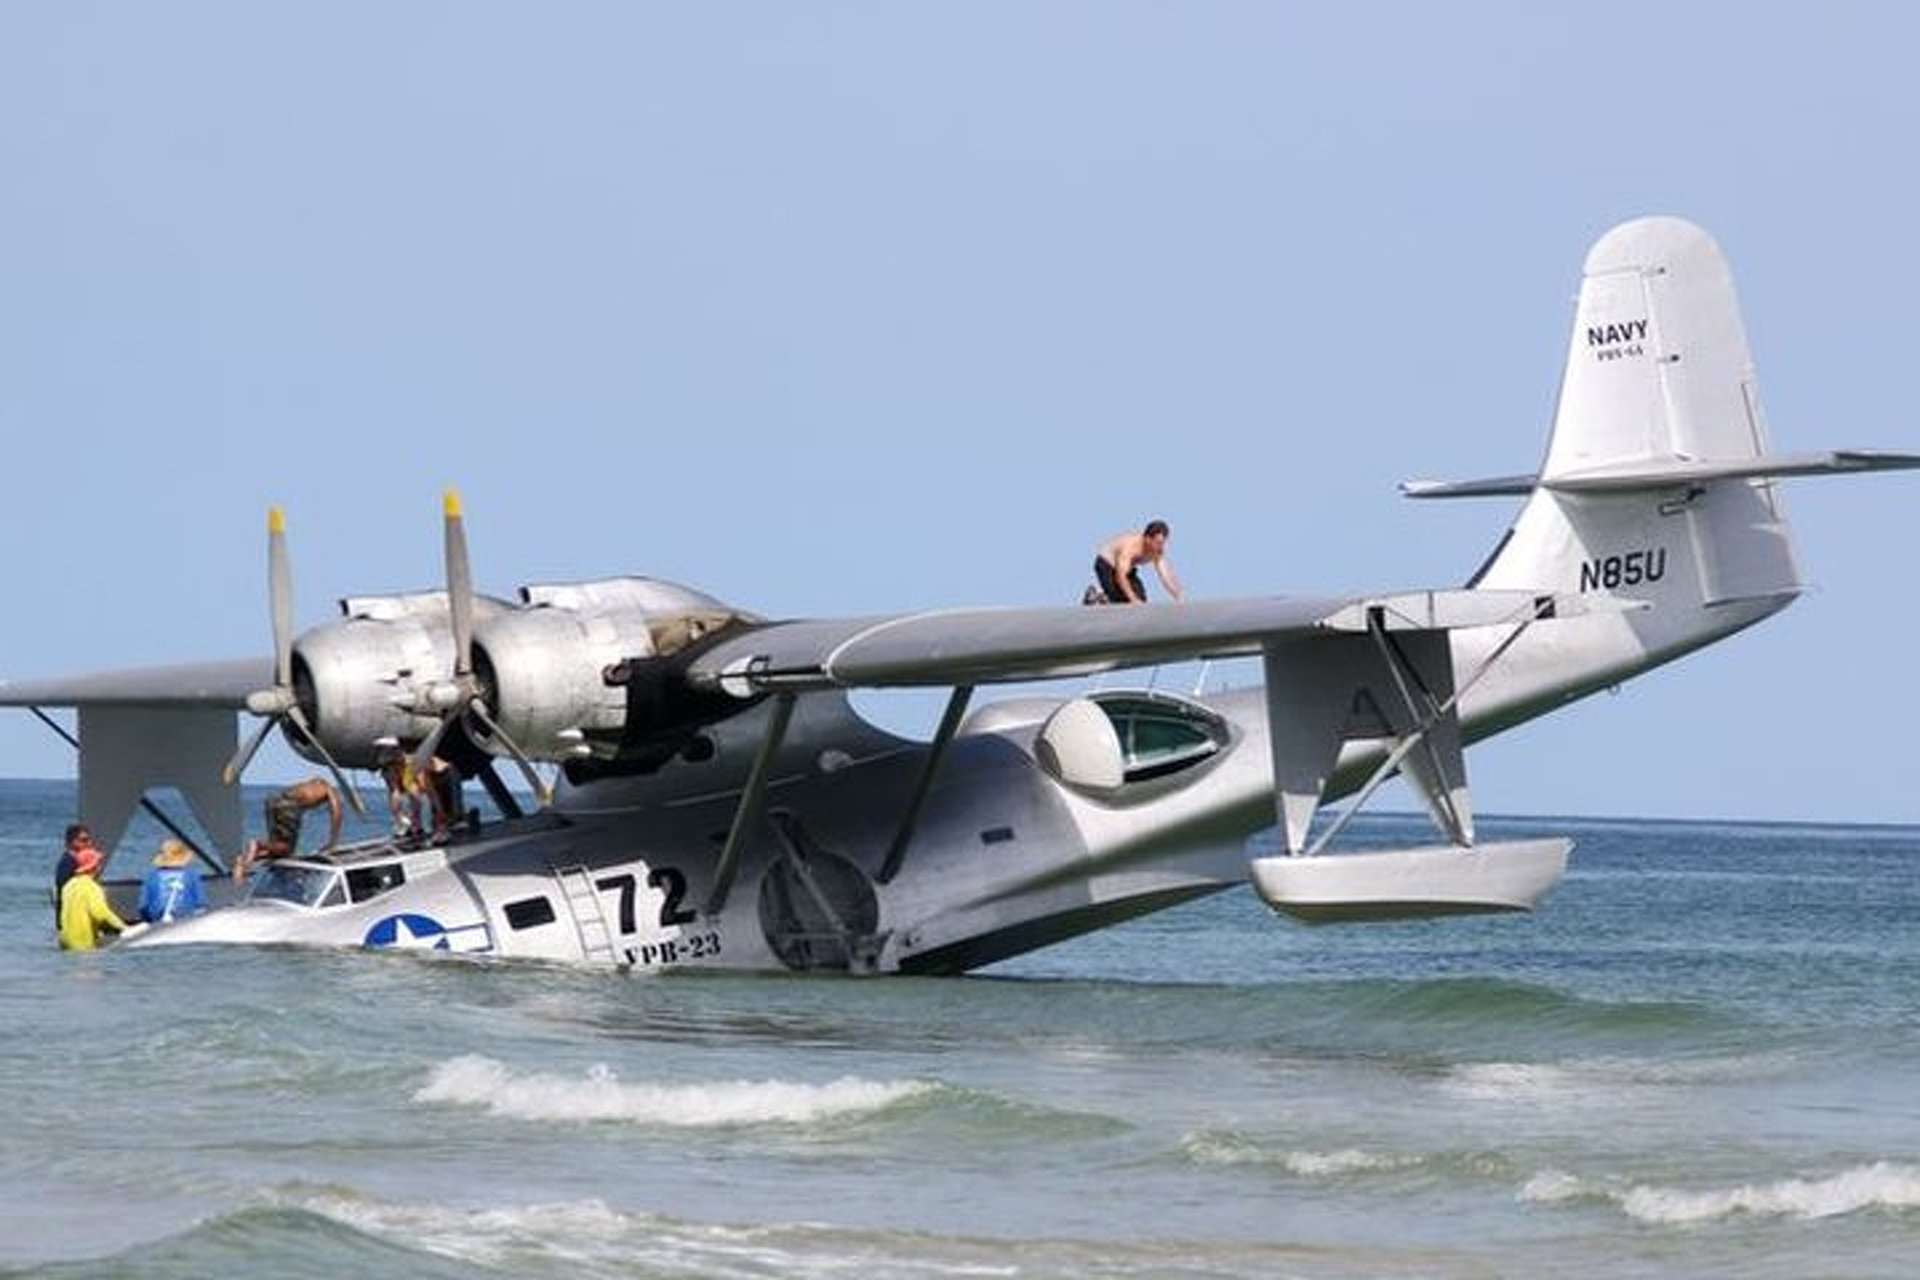 See a Flying Boat From Nic Cage Film Stuck on a Beach 1 of 2